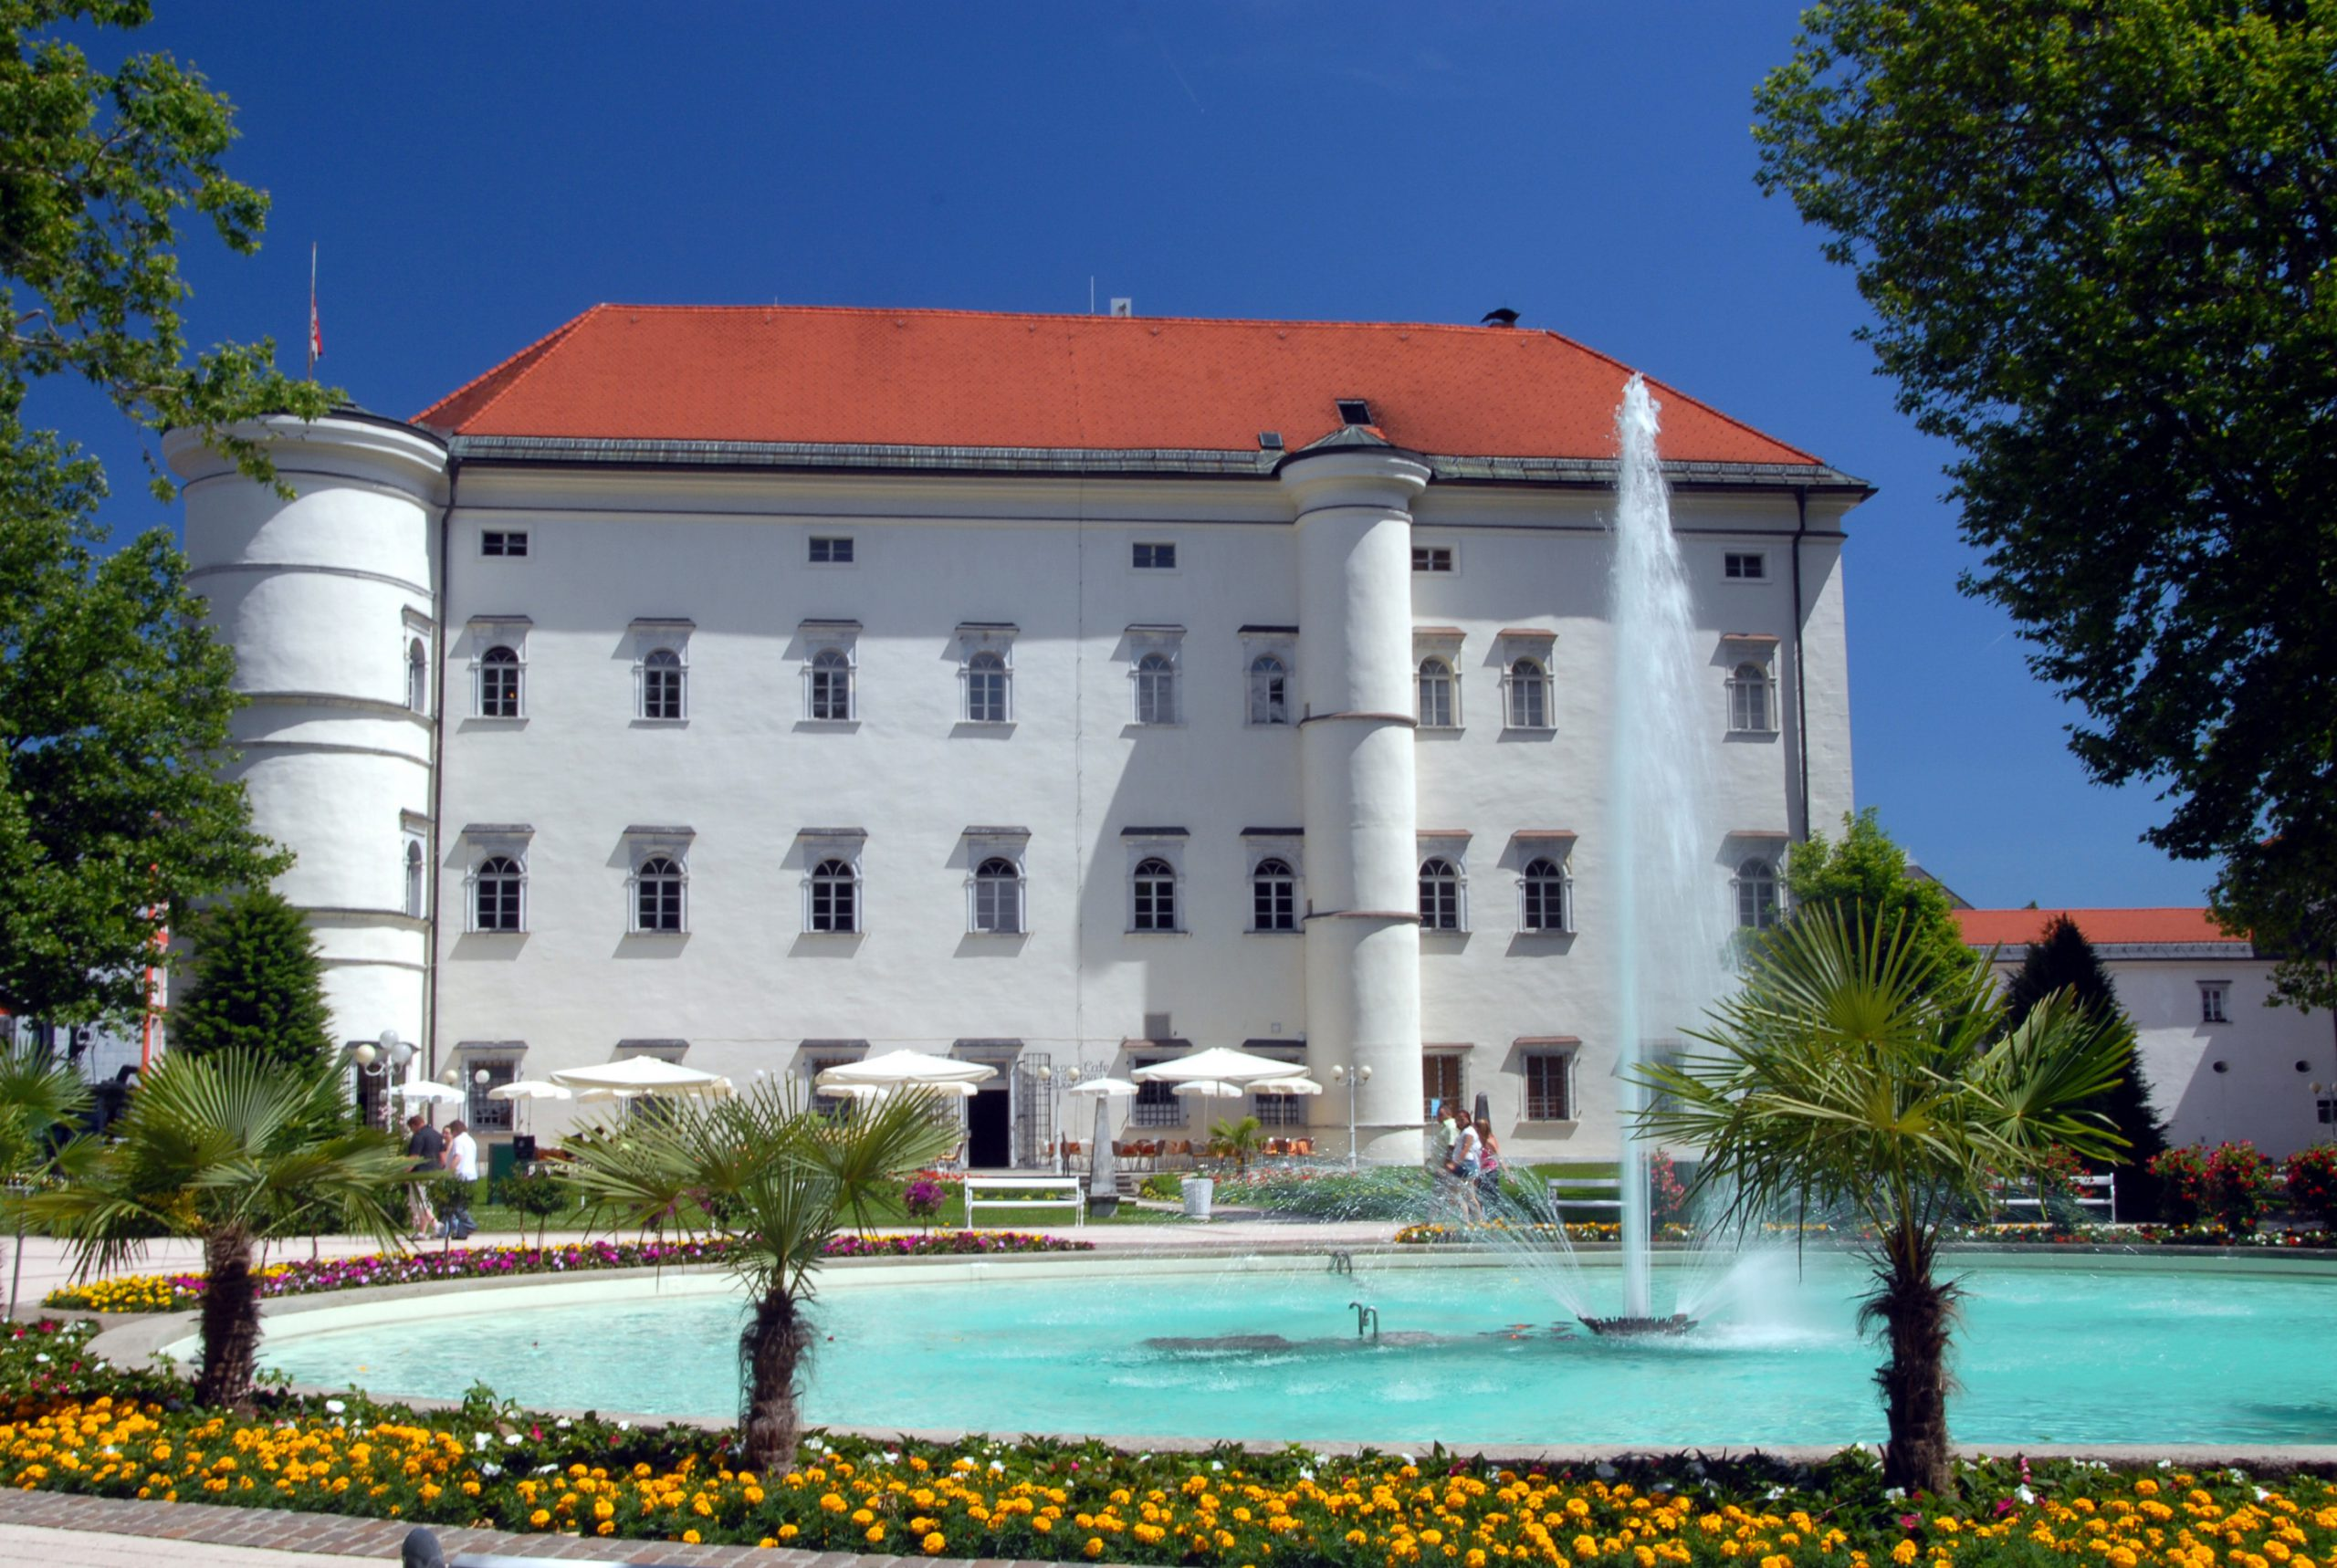 Combine cycling and culture in Spittal an der Drau and visit the historic Porcia Castle